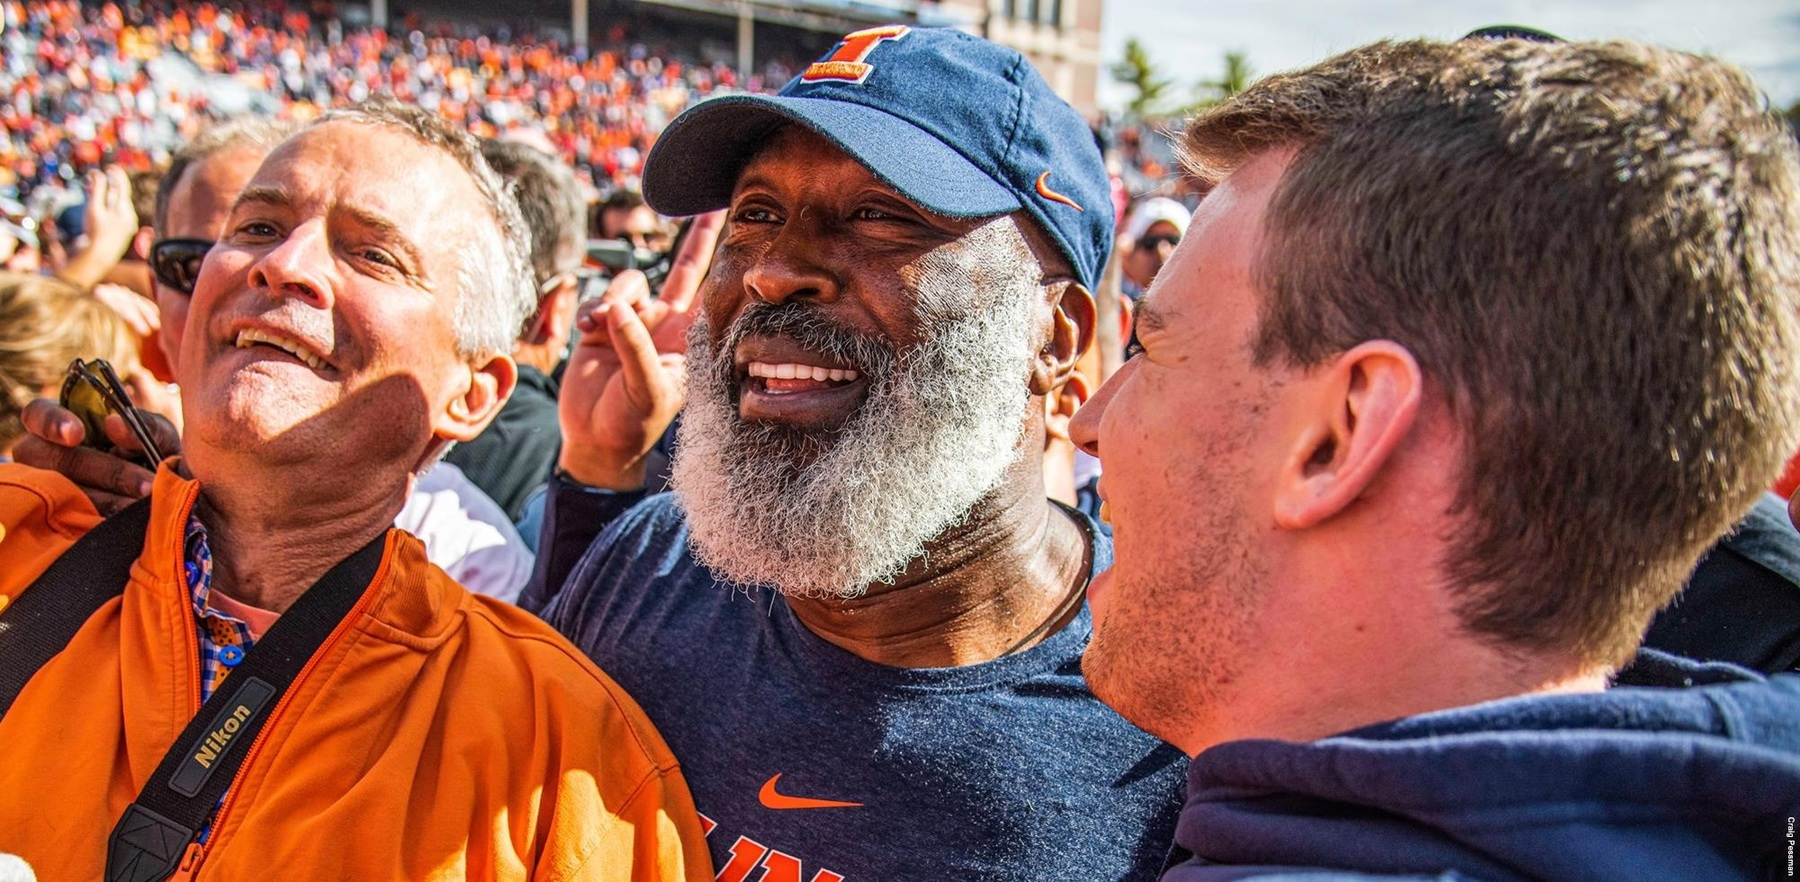 Coach Lovie Smith surrounded by fans following the win over Wisconsin on October 19, 2019